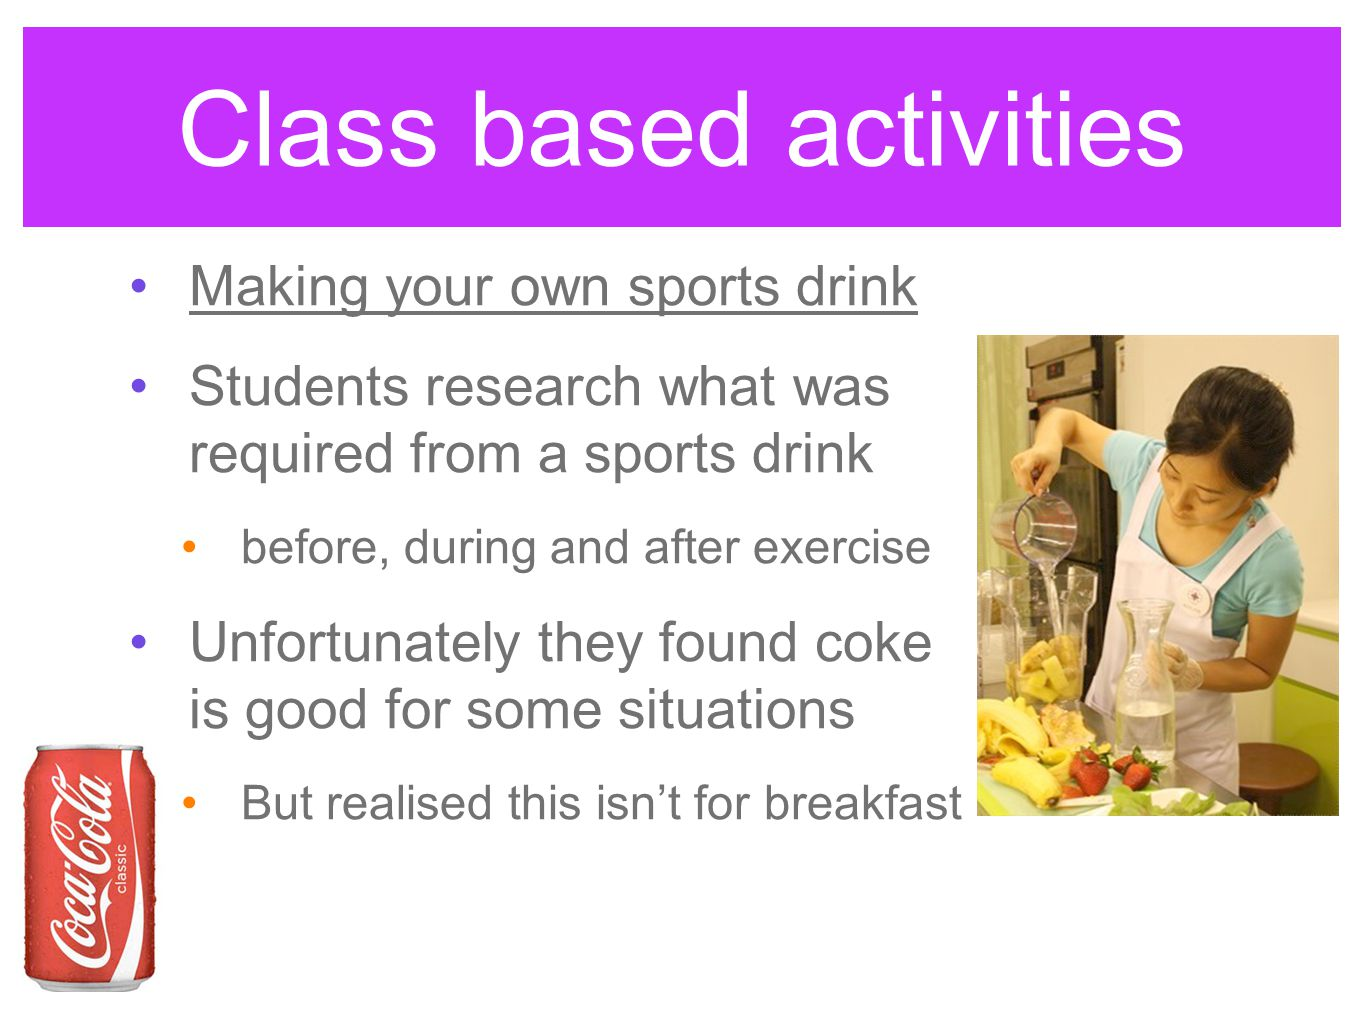 Class based activities Making your own sports drink Students research what was required from a sports drink before, during and after exercise Unfortunately they found coke is good for some situations But realised this isn't for breakfast